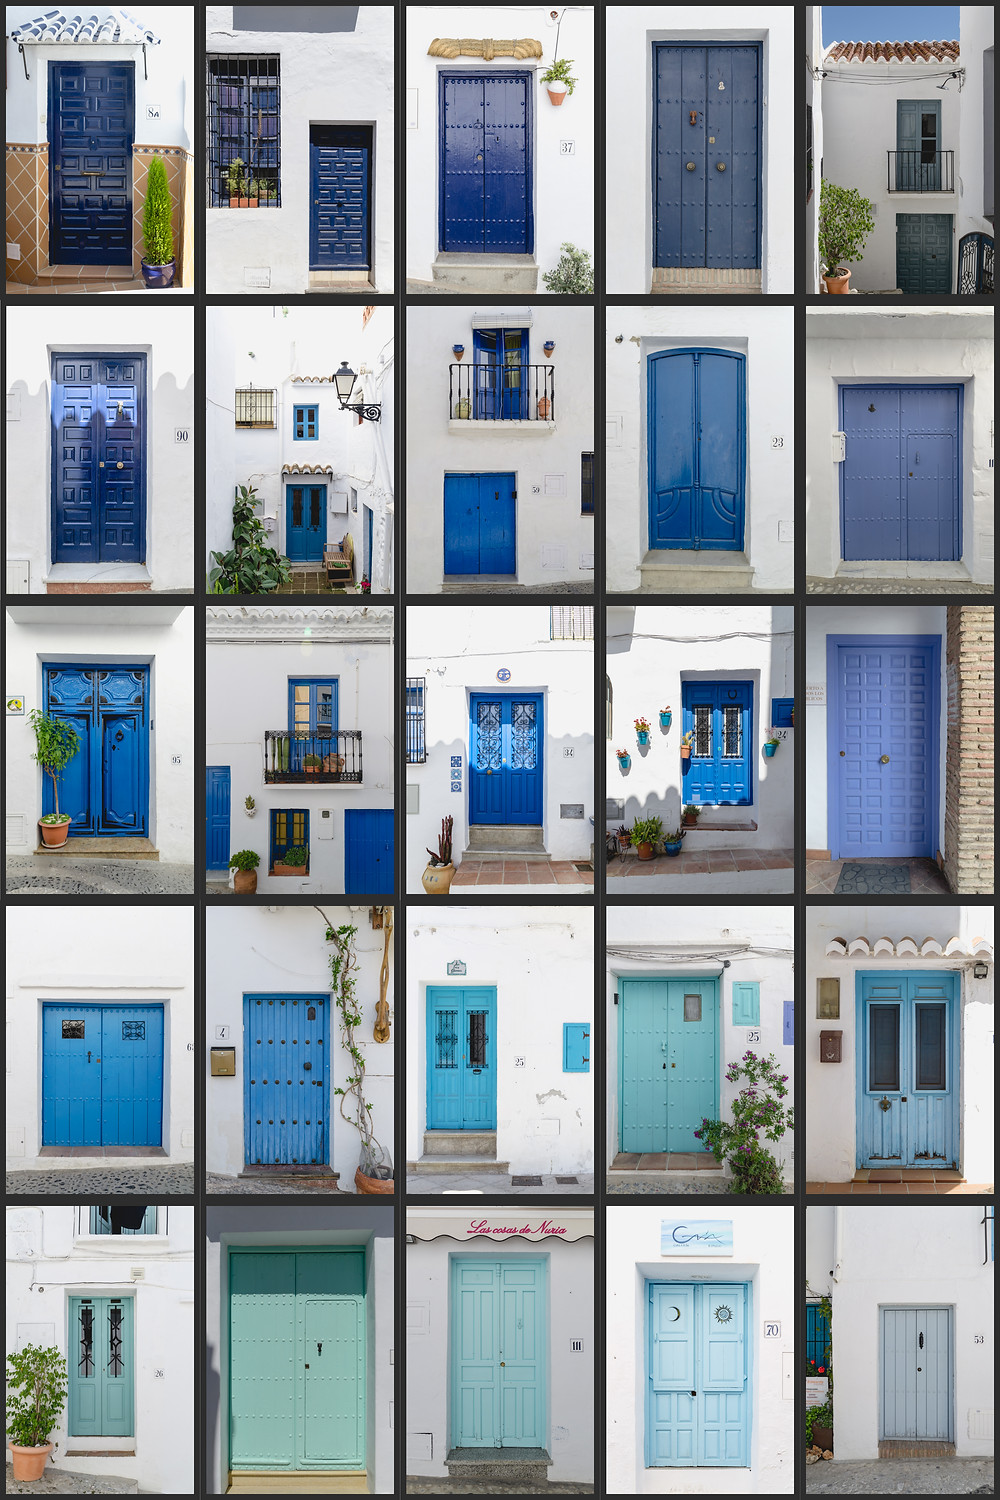 Frigiliana, Spain - Blue doors everywhere!